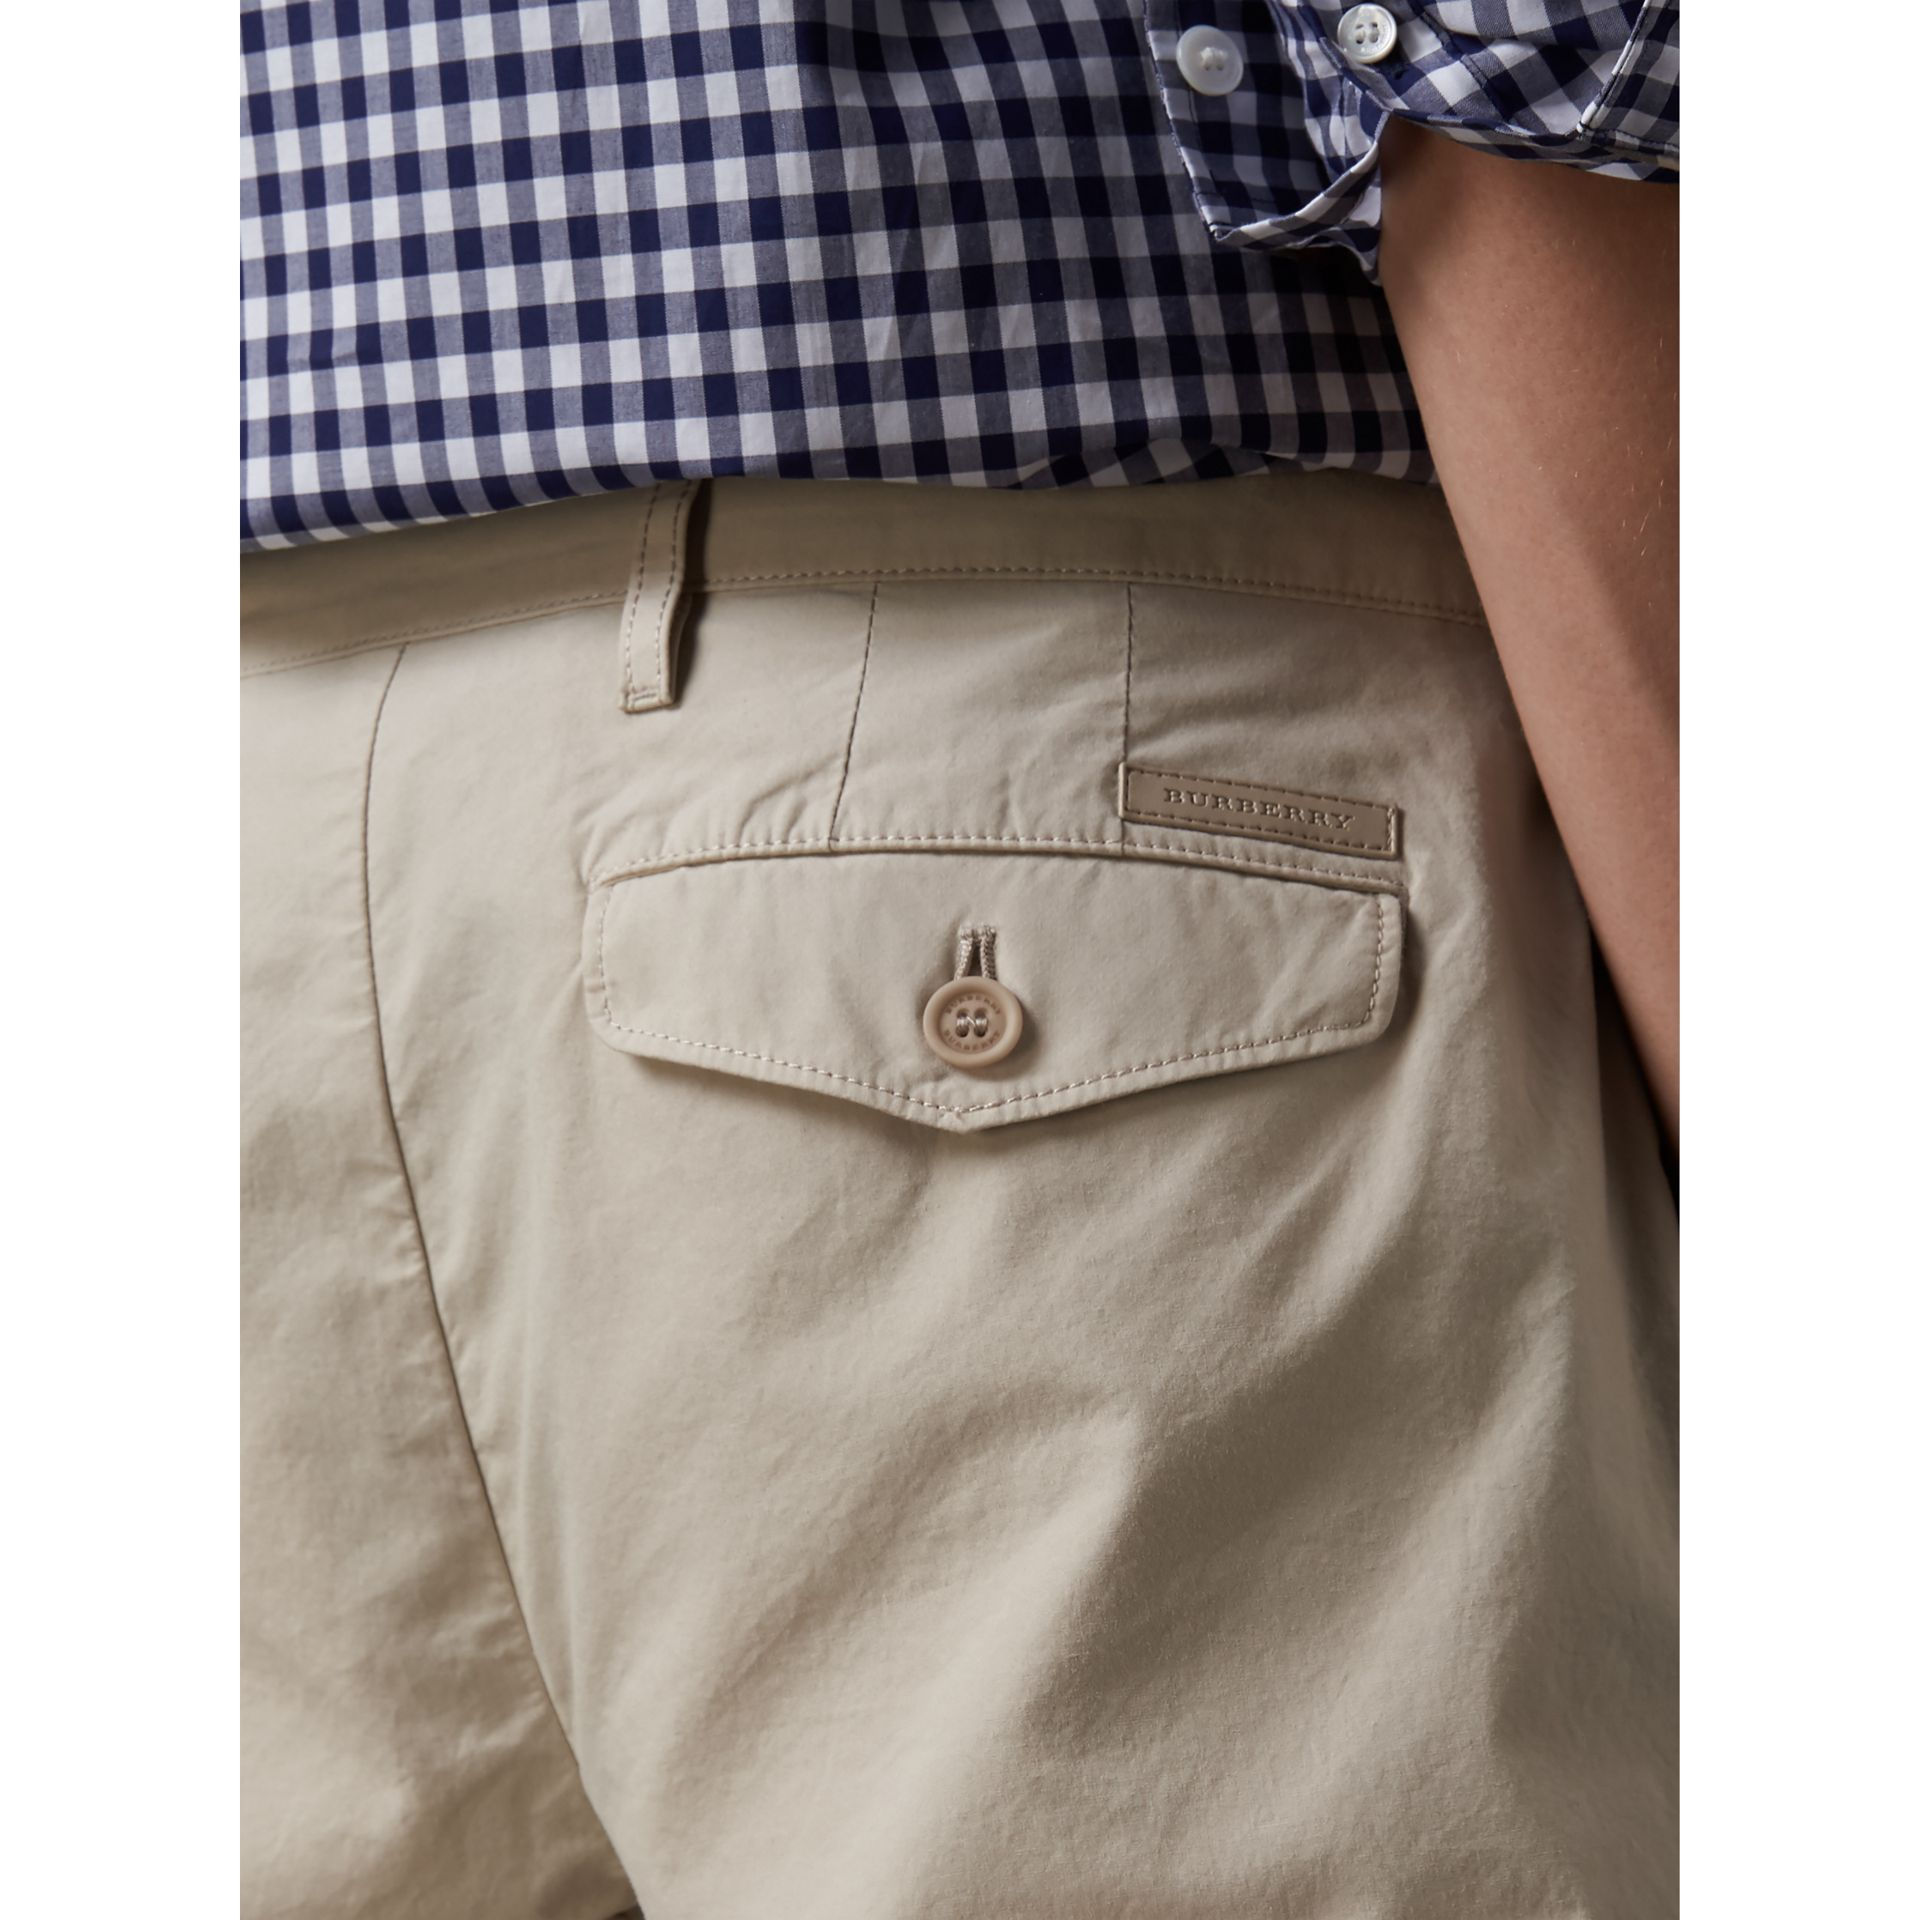 Chino slim en popeline de coton (Pierre) - Homme | Burberry - photo de la galerie 1